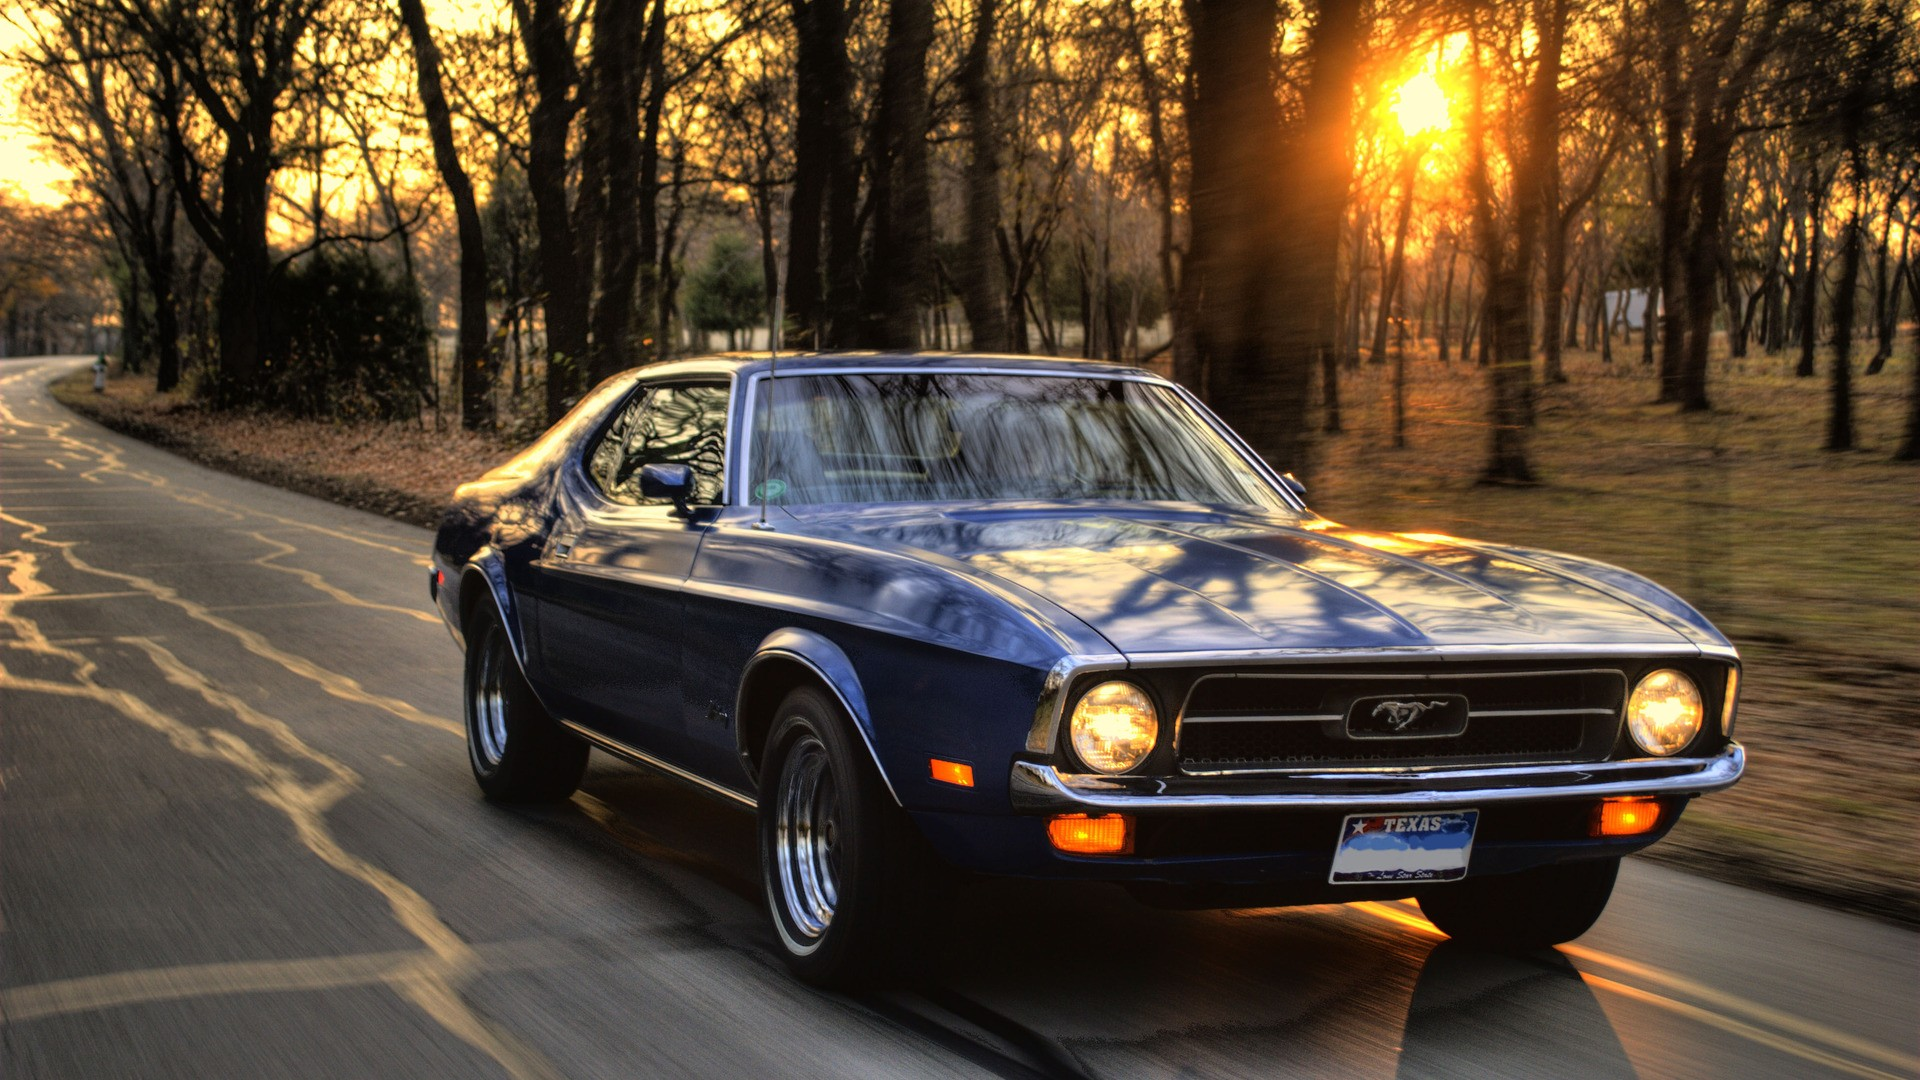 Wallpaper Trees Sunset Road Ford Mustang Muscle Cars